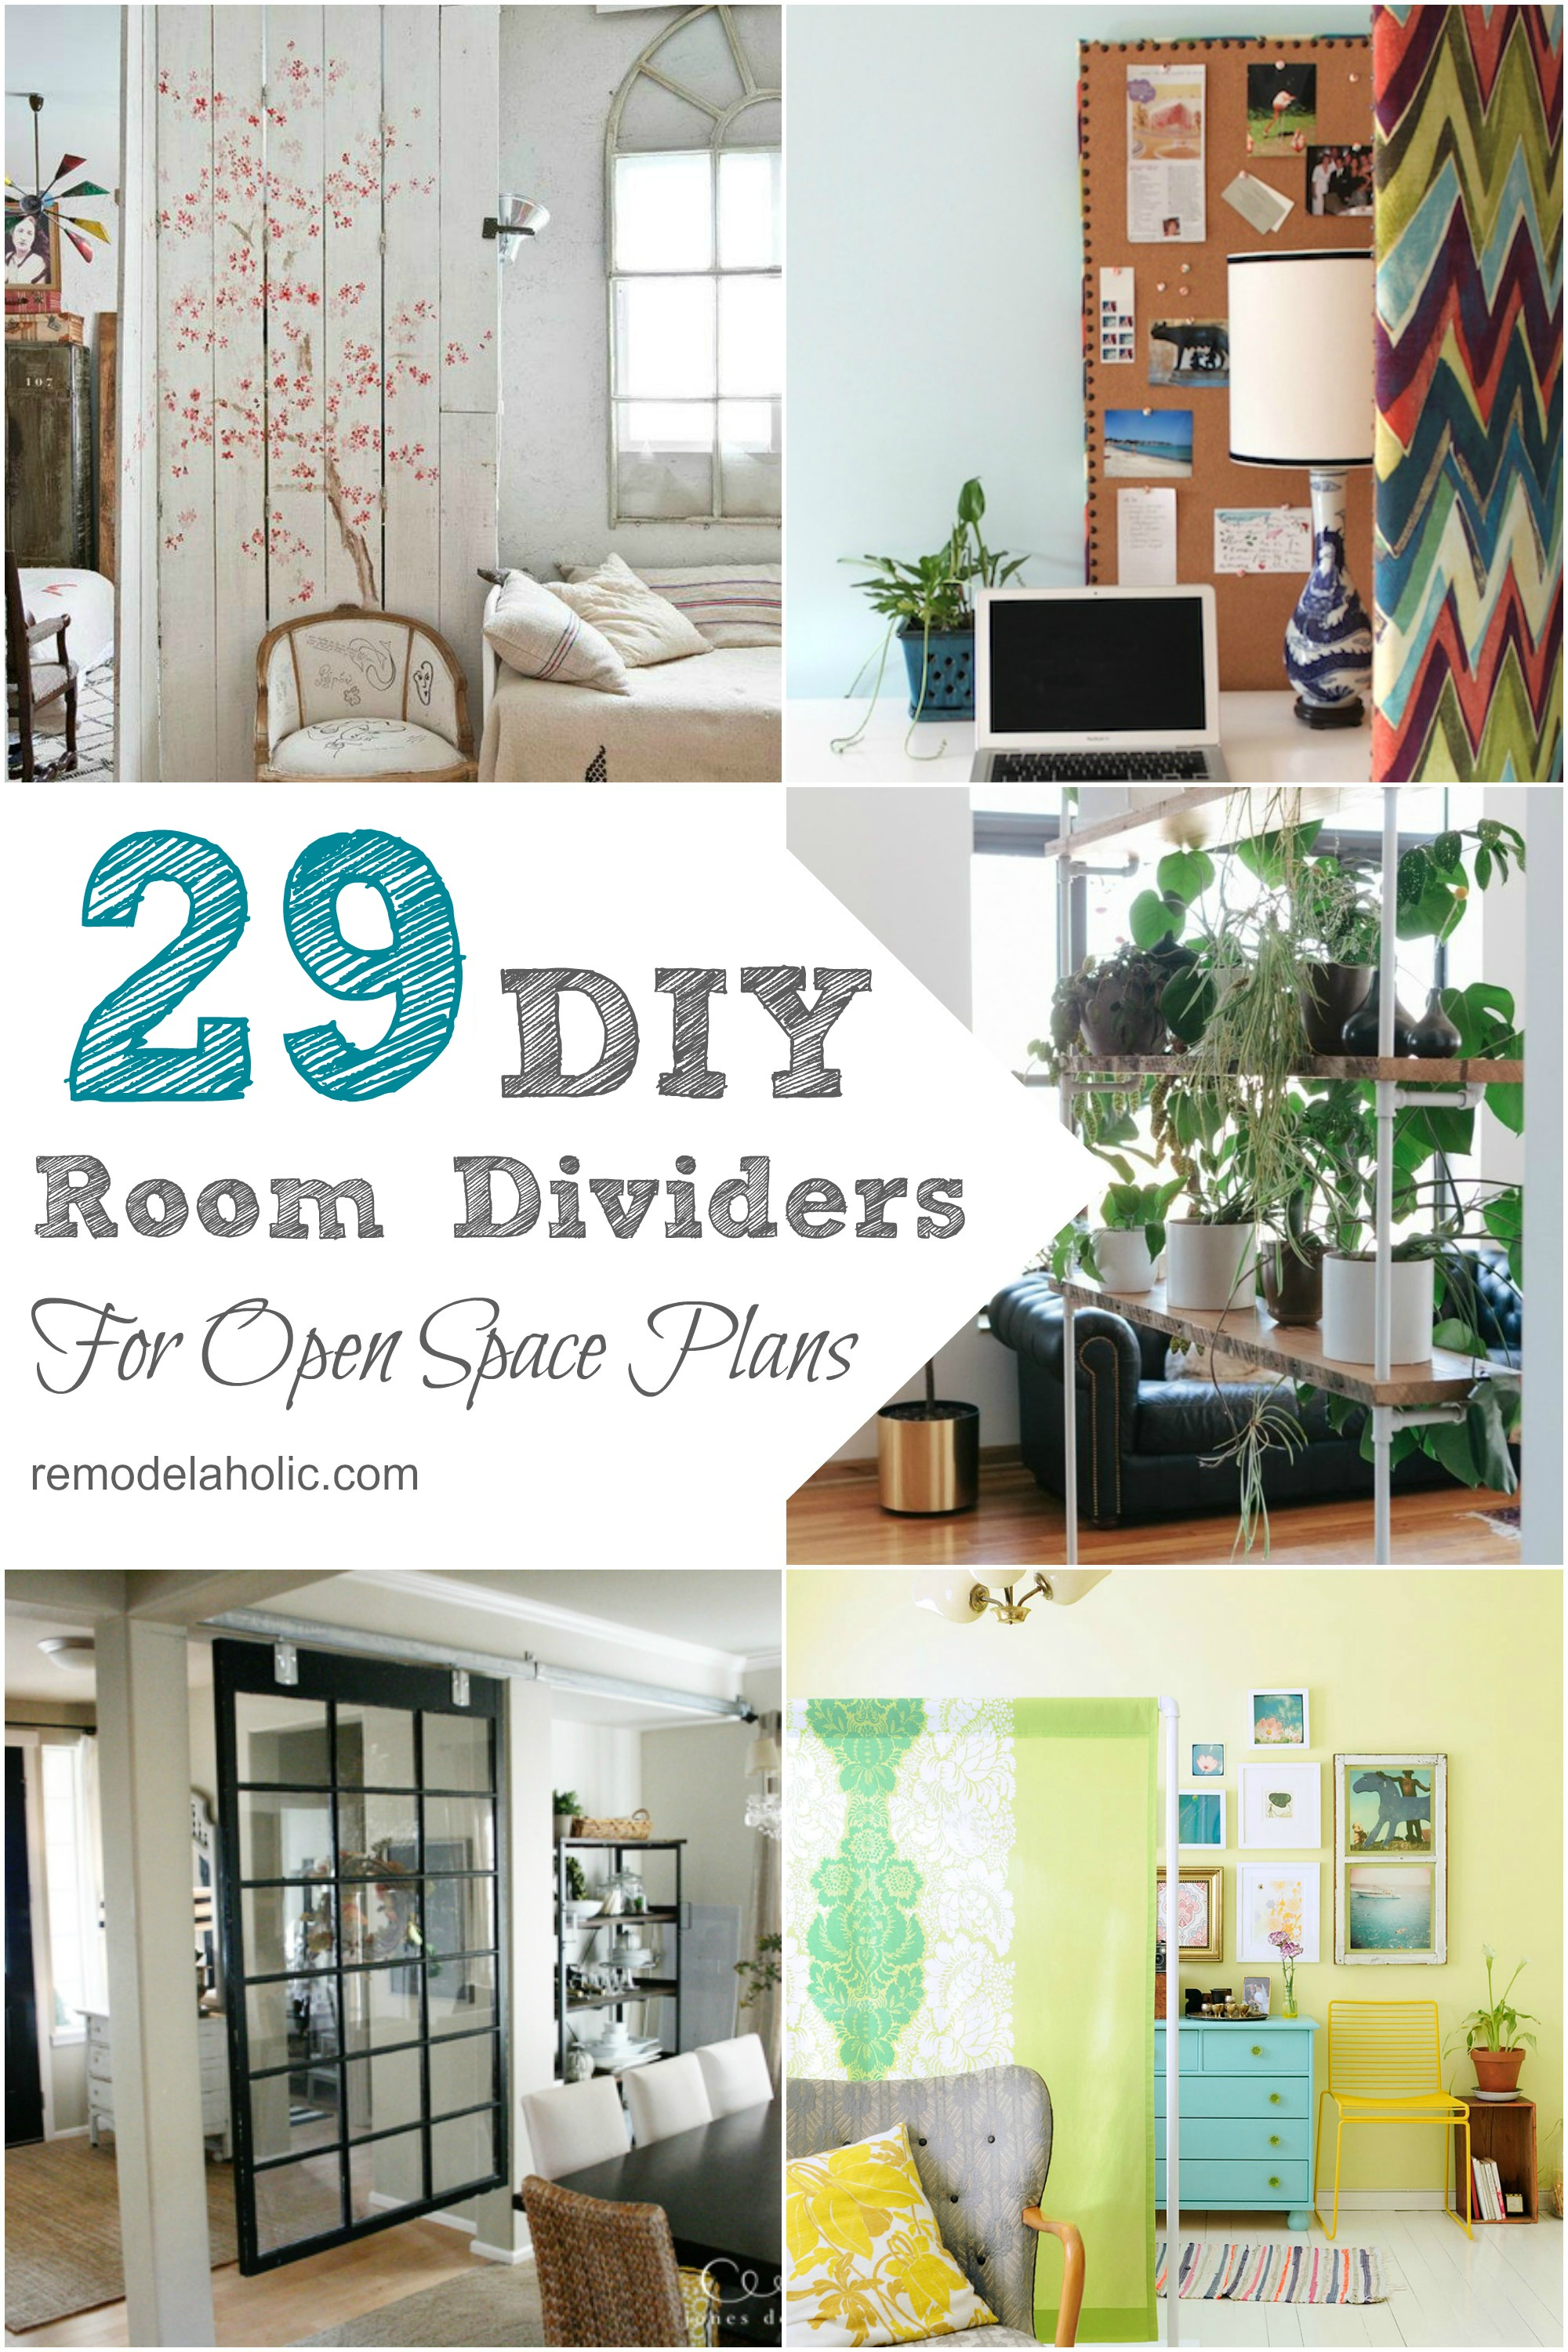 Remodelaholic 29 creative diy room dividers for open space plans Diy home design ideas living room software